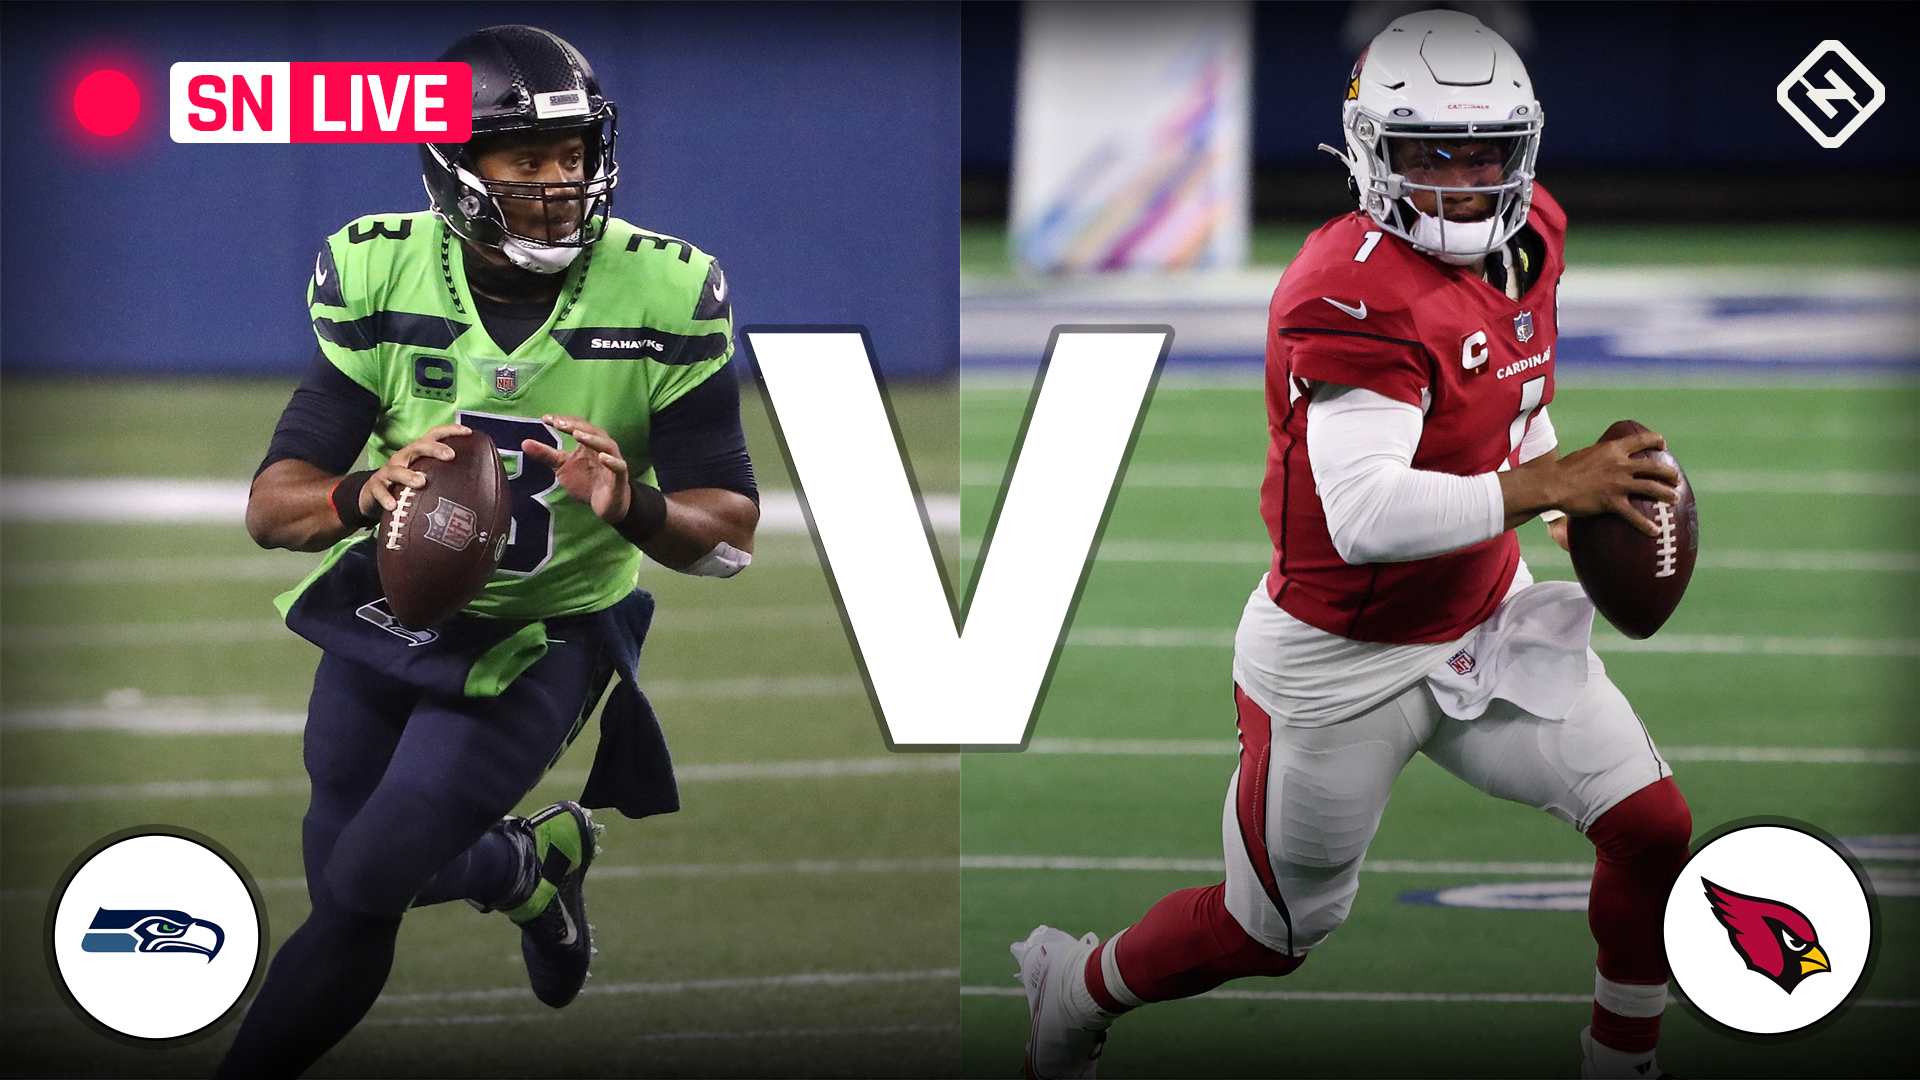 Seahawks vs. Cardinals live rating, updates, highlights from 'Sunday Night Football' game